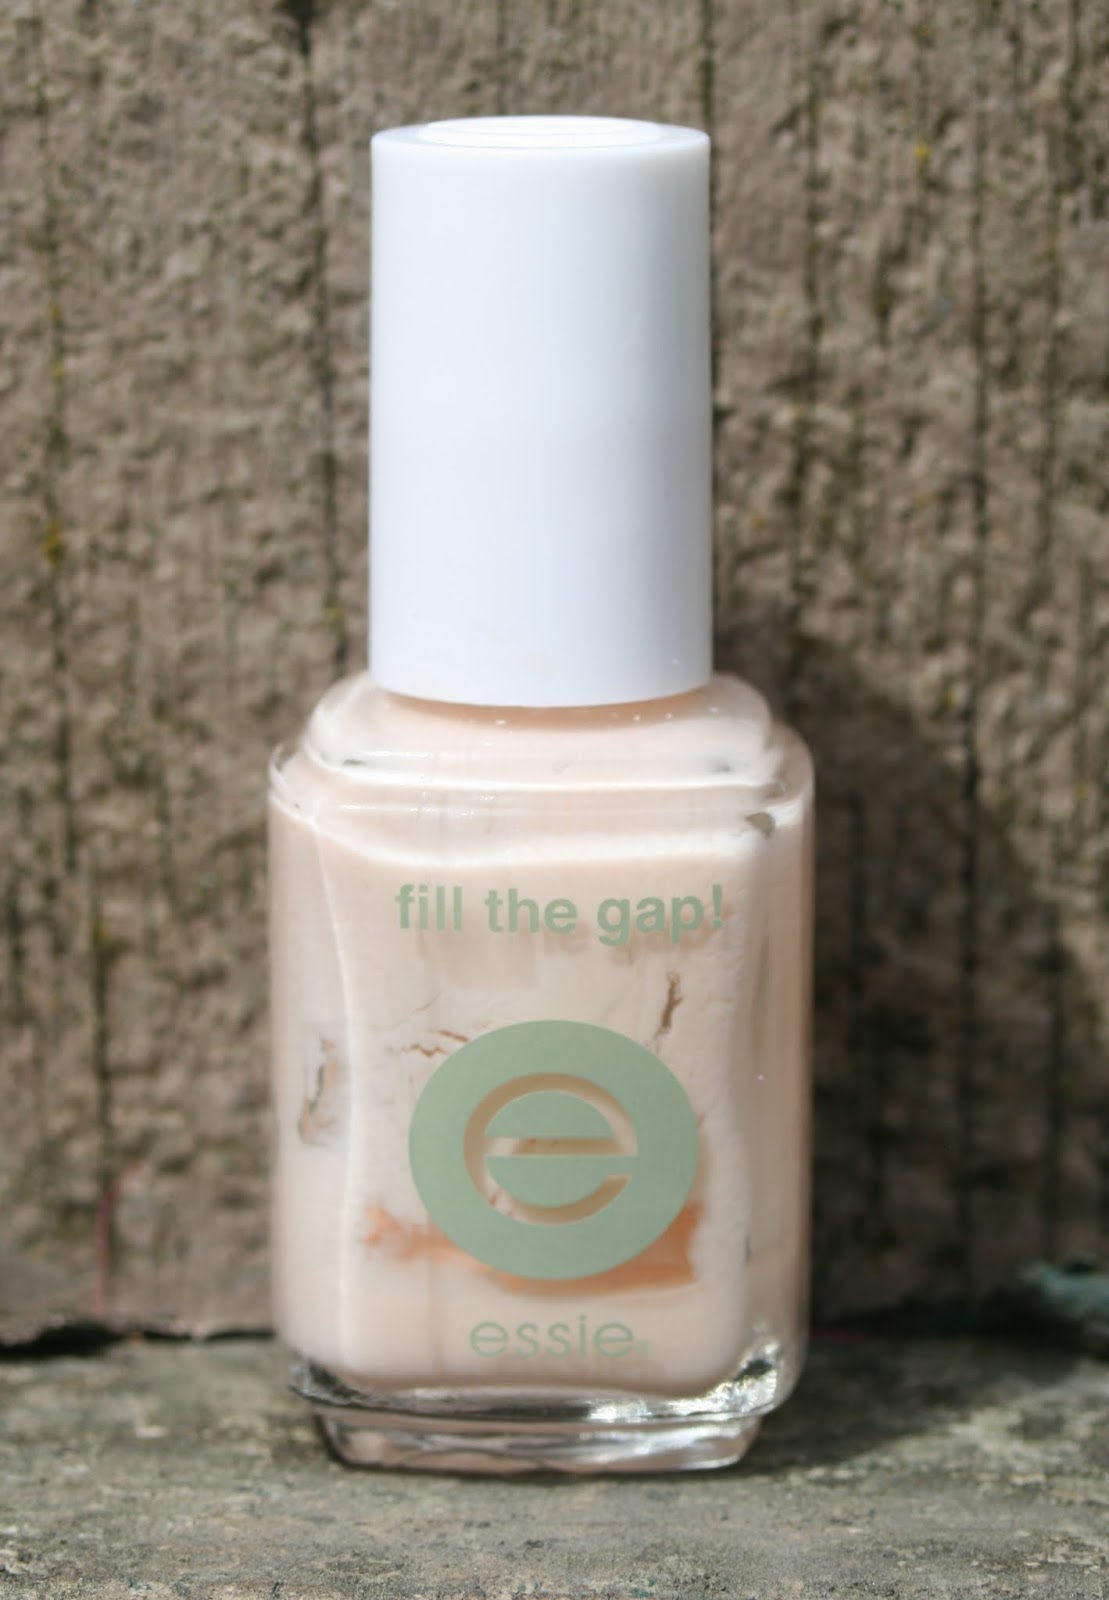 Essie Fill the Gap!